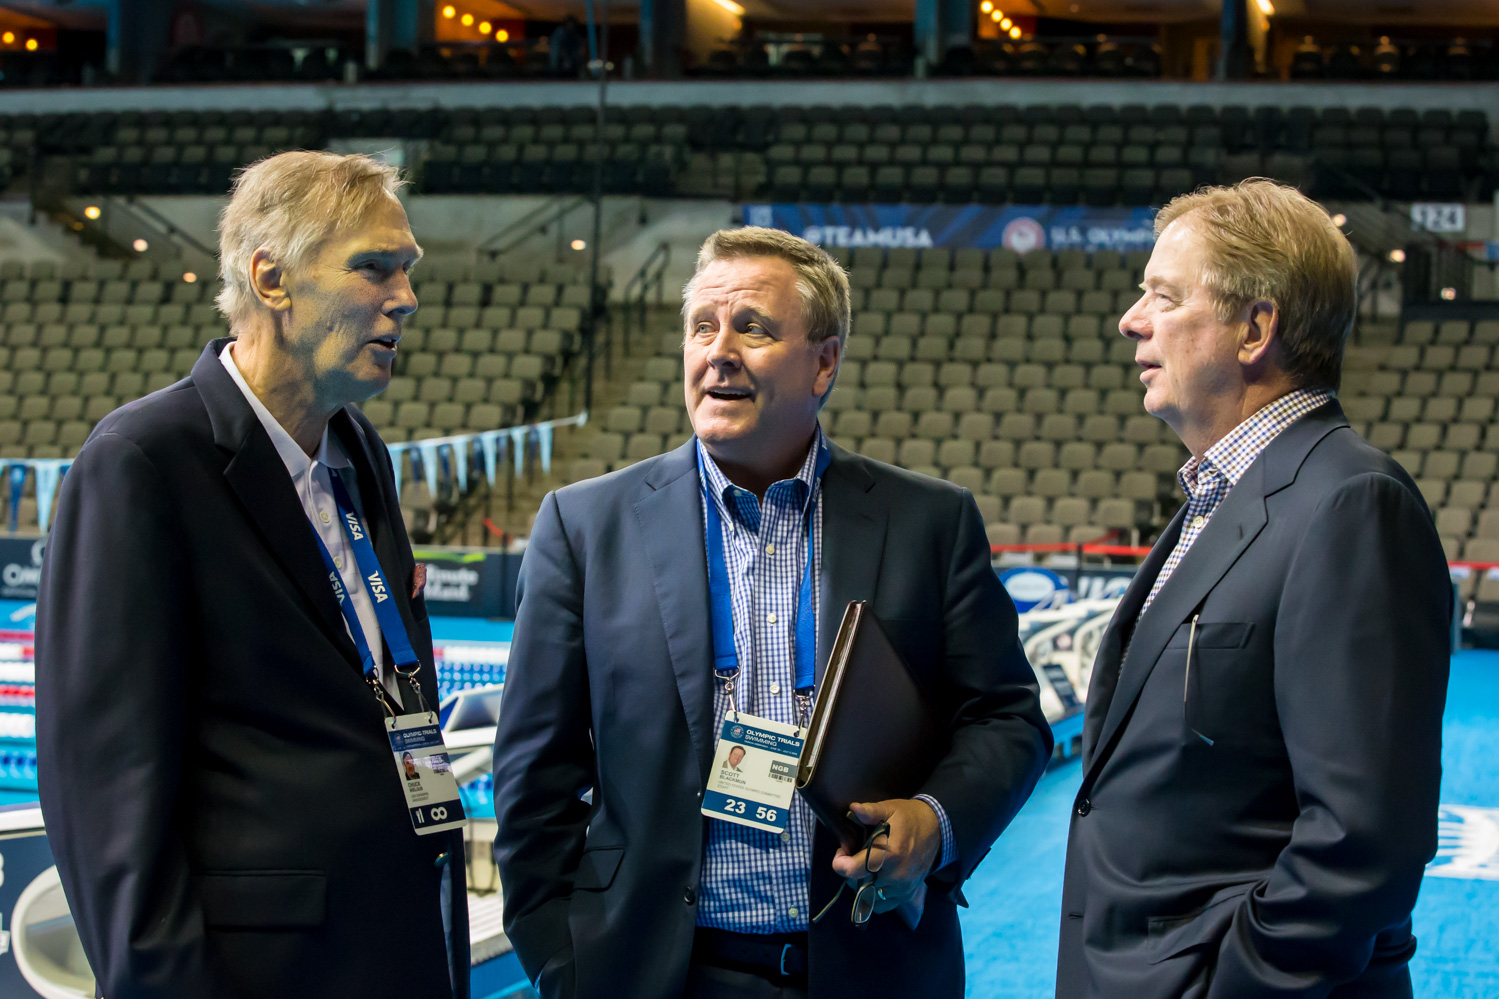 Omaha 2016: Wielgus on deck with USOC chief executive Scott Blackmun and board chair Larry Probst // USA Swimming